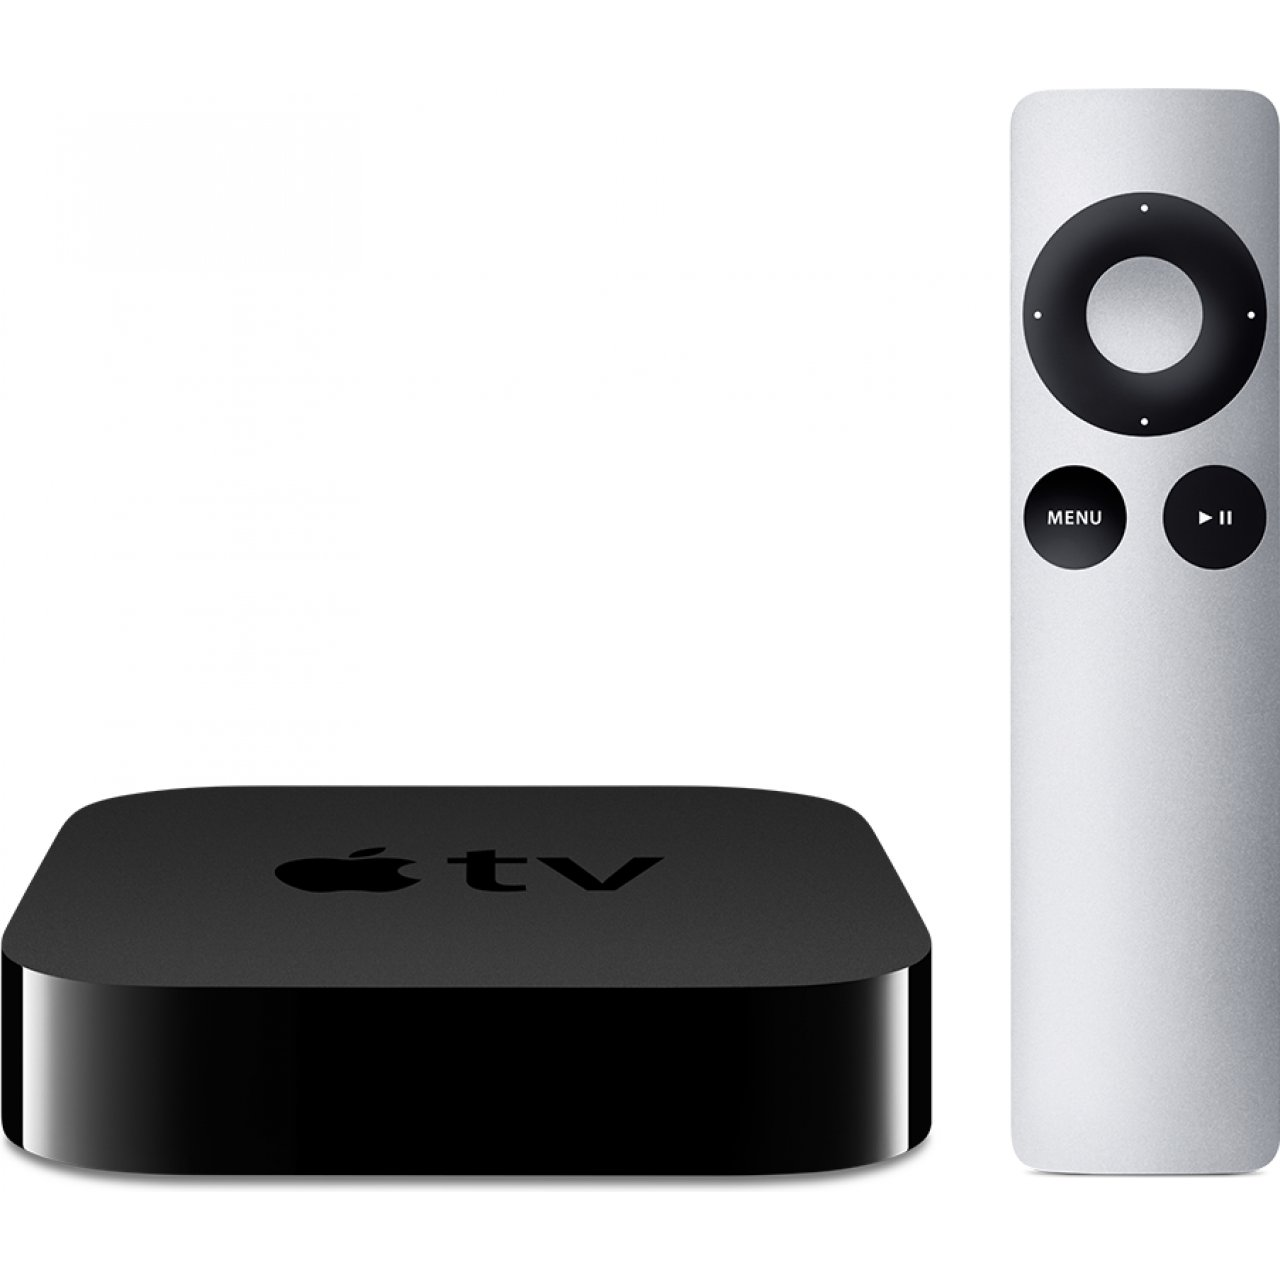 Apple TV lets you watch and listen to media from the iTunes store through your television